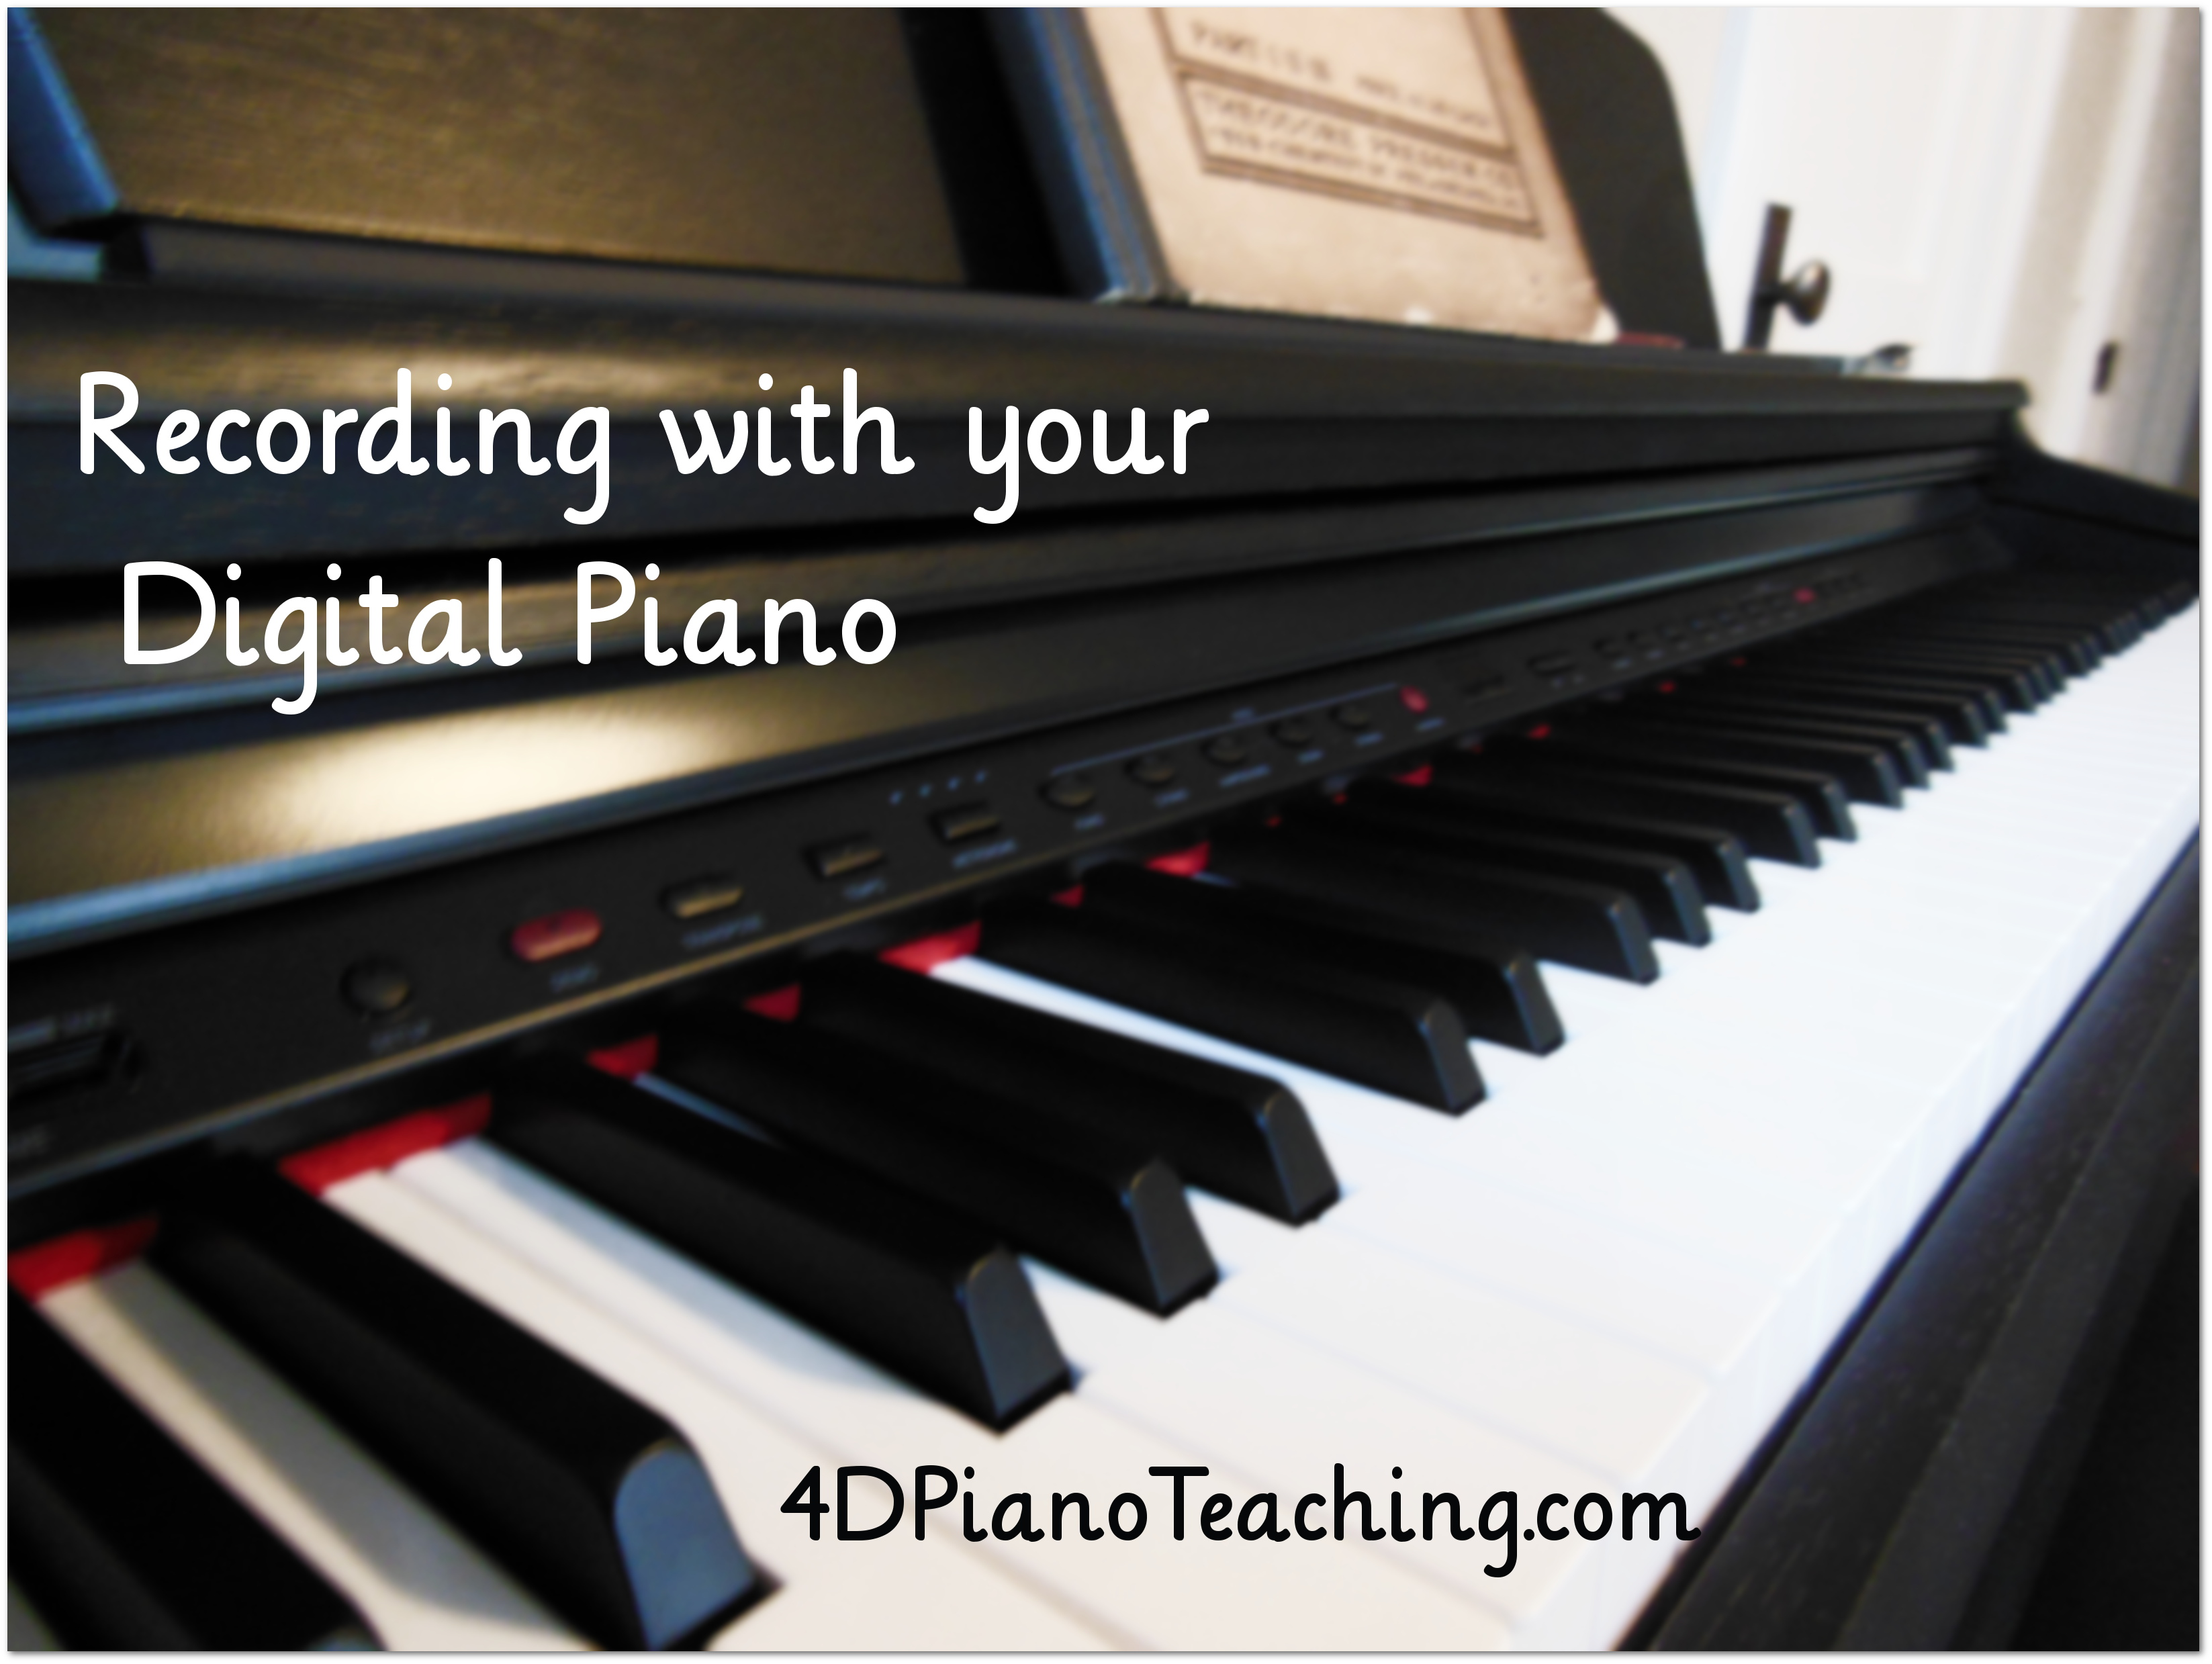 Digital Piano Recording : recording from your digital piano tutorial ~ Hamham.info Haus und Dekorationen